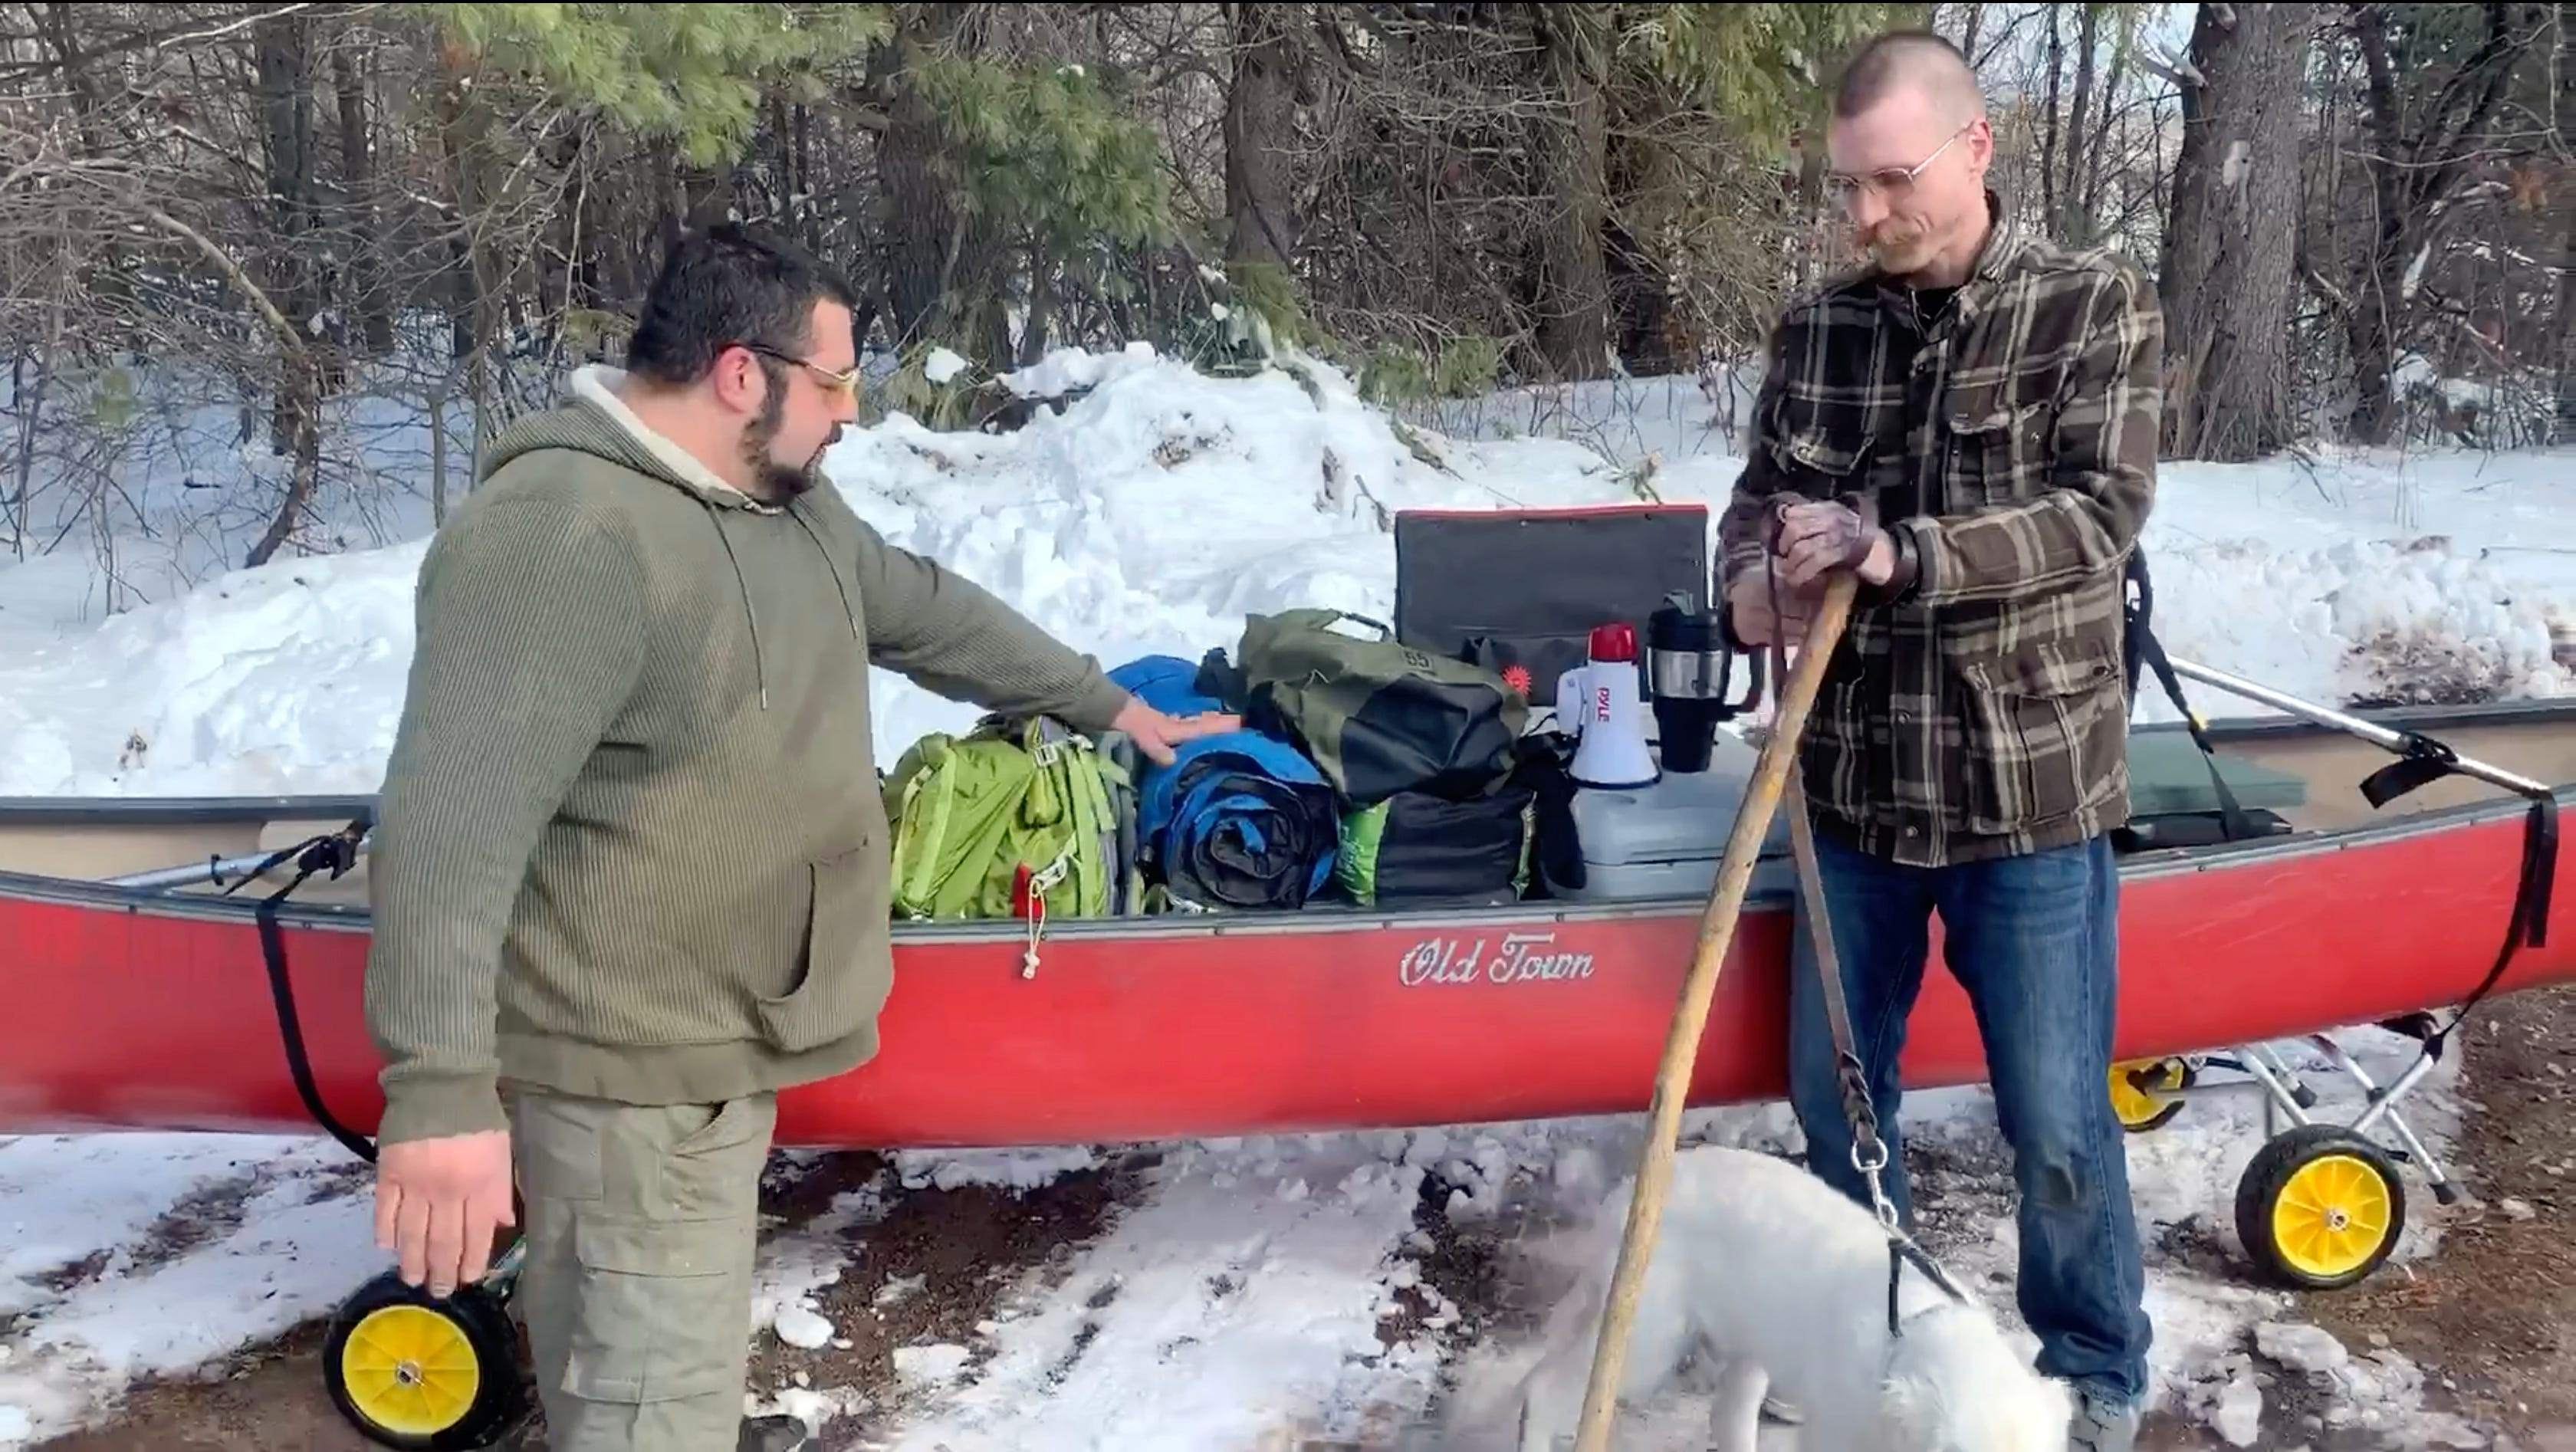 Mississippi River Canoe Trip Disabled Men Are Paddling To Persevere